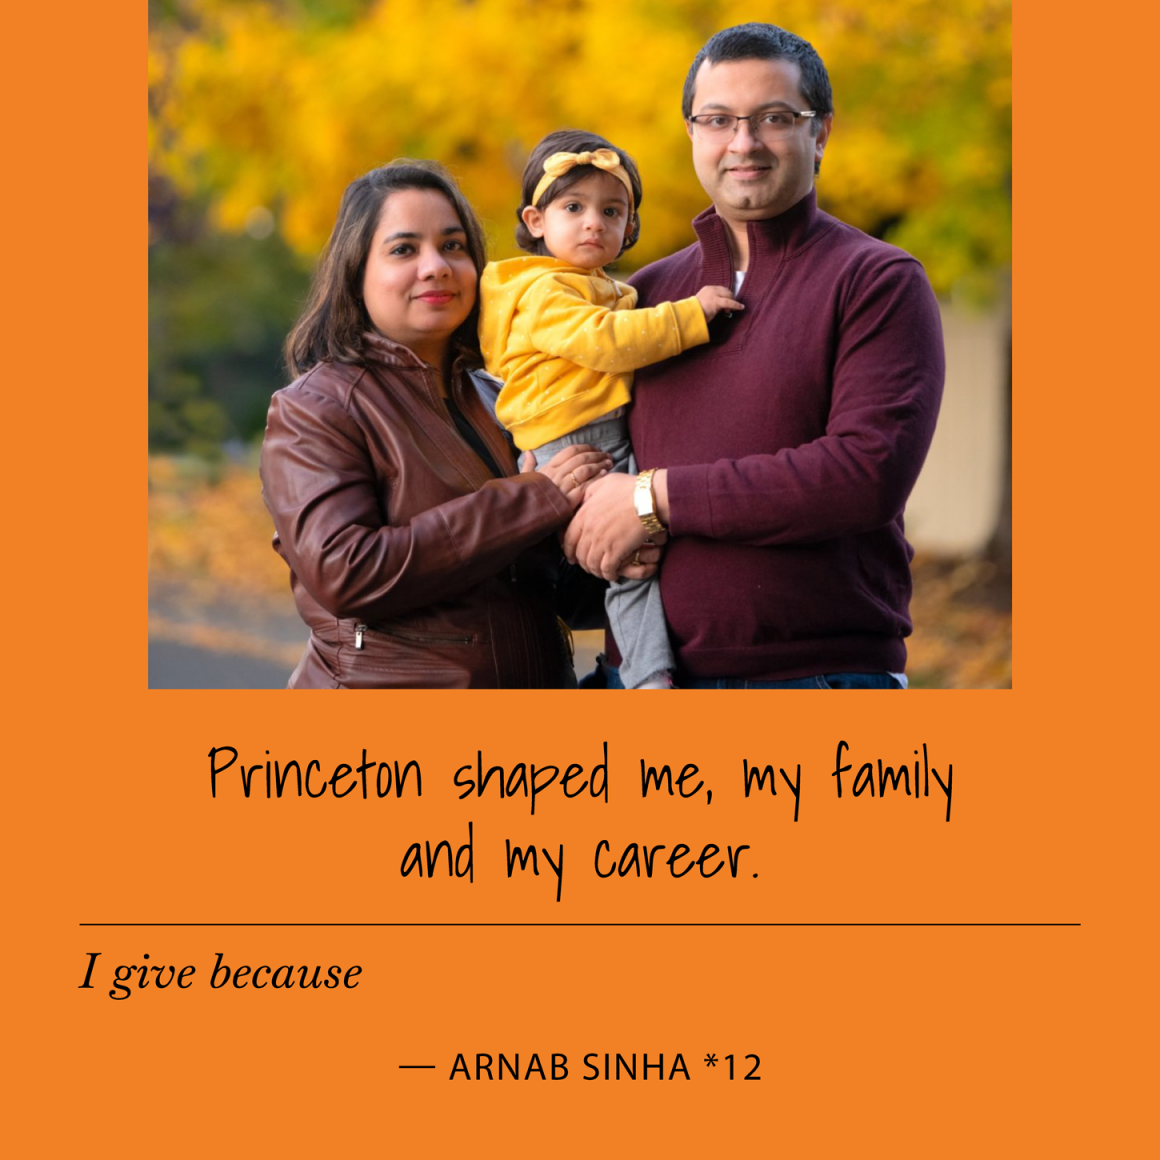 I give to Princeton because Princeton shaped me, my family and my career. Arnab Sinha *12